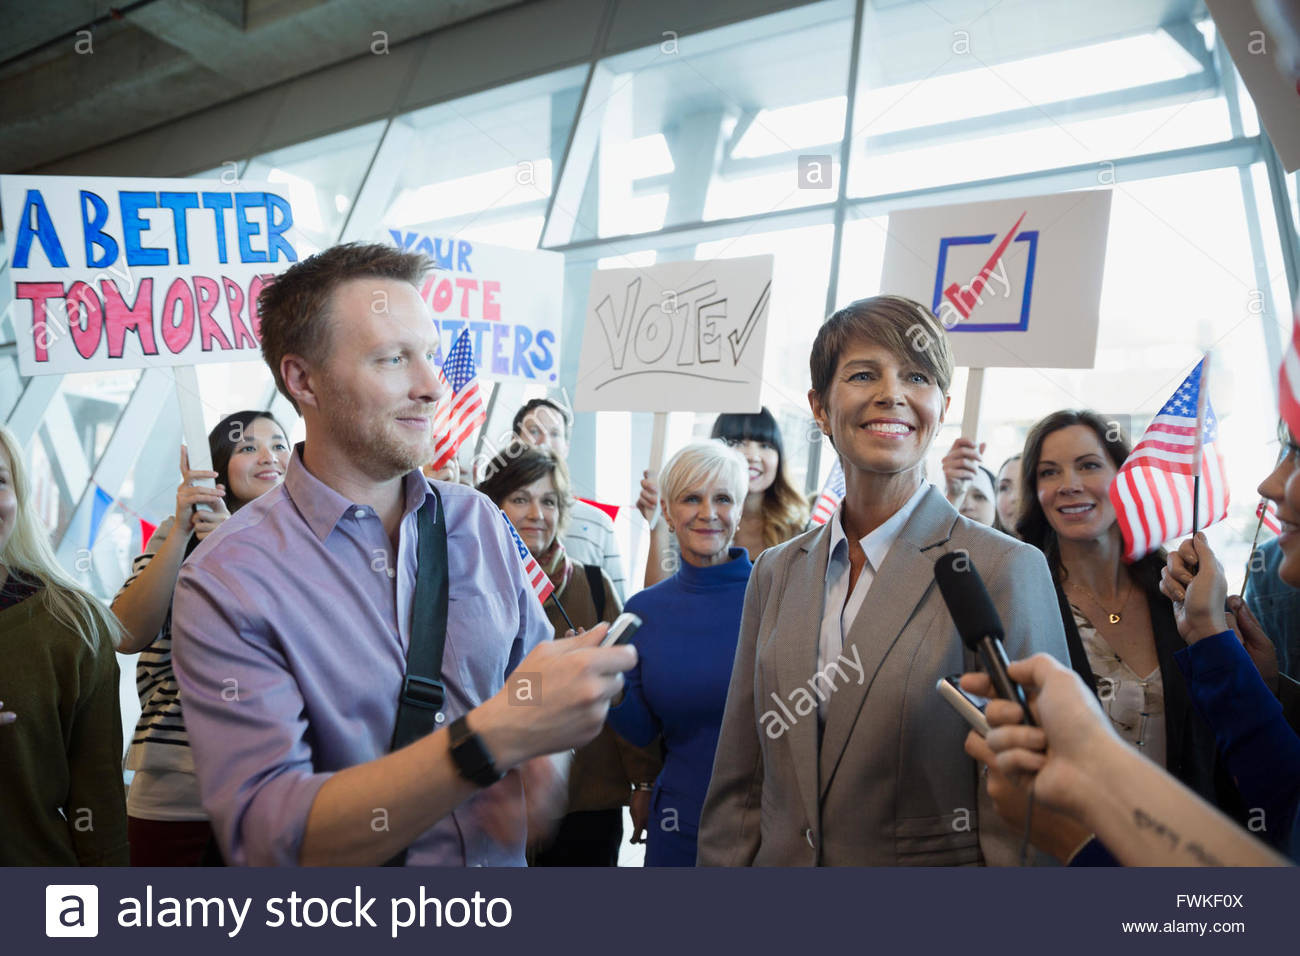 Female politician being interviewed among crowd at rally - Stock Image